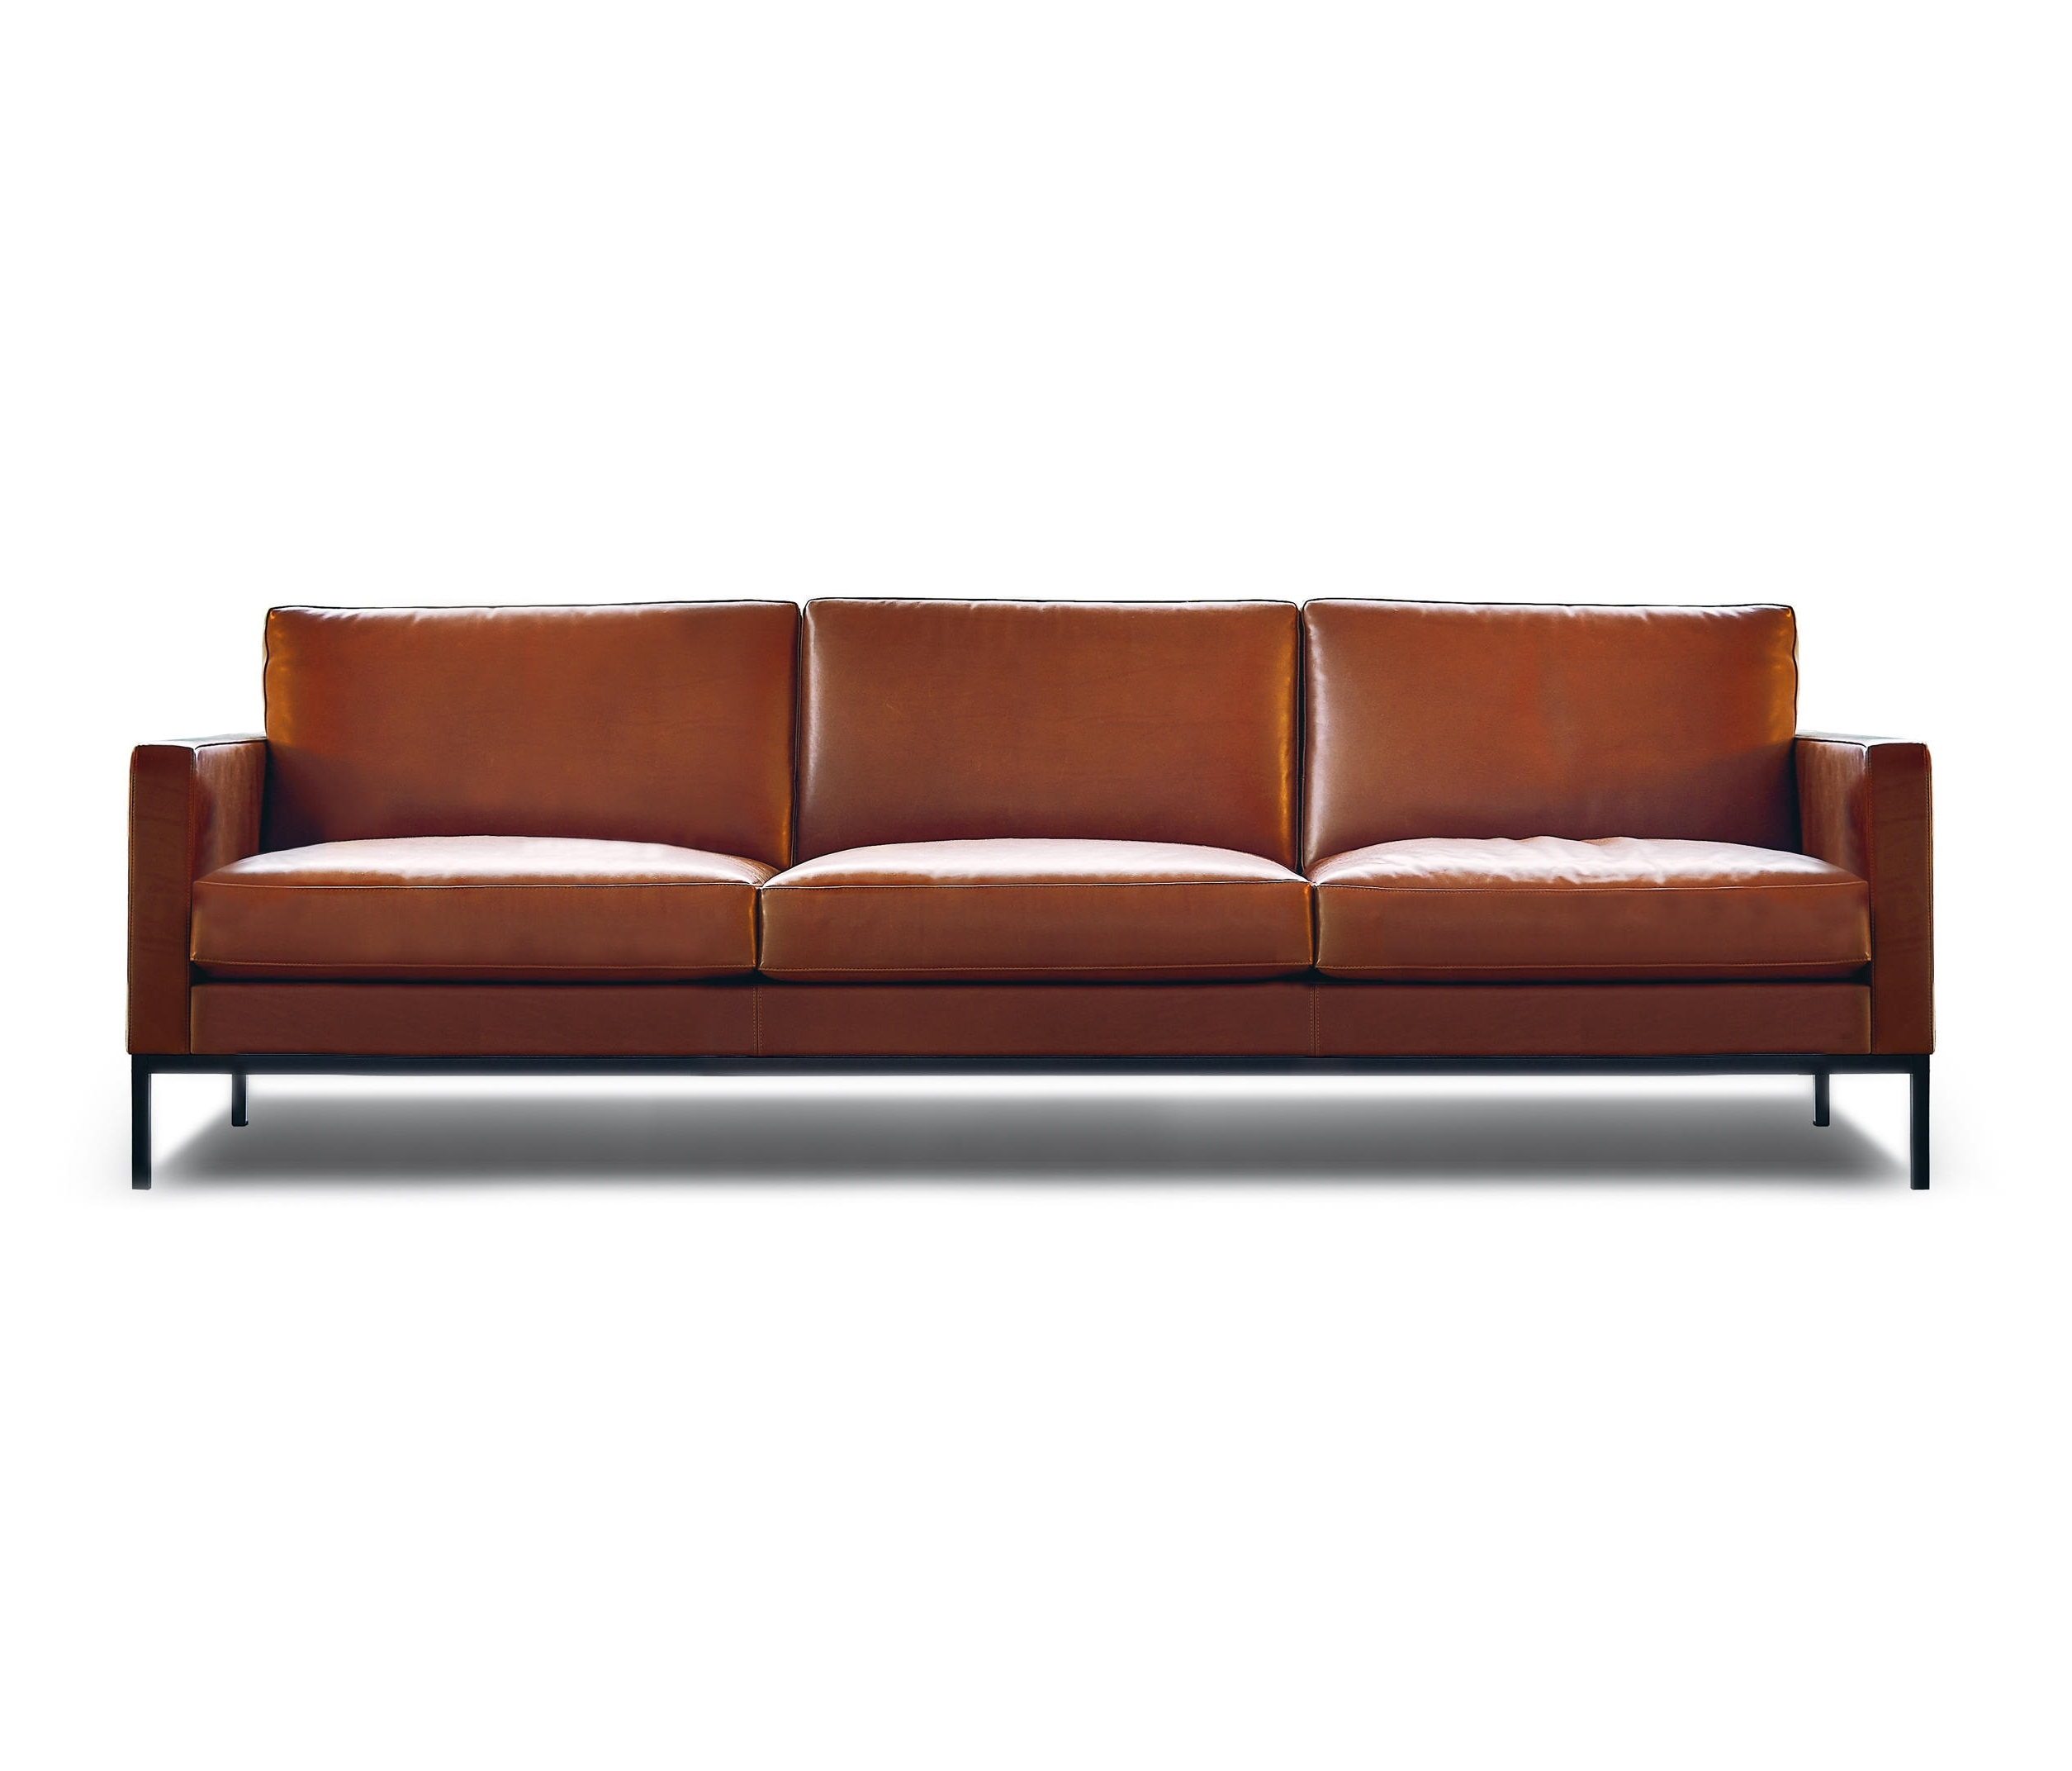 Florence Knoll Fabric Sofas Inside Newest Florence Knoll Lounge 3 Seat Sofa – Lounge Sofas From Knoll (View 5 of 20)